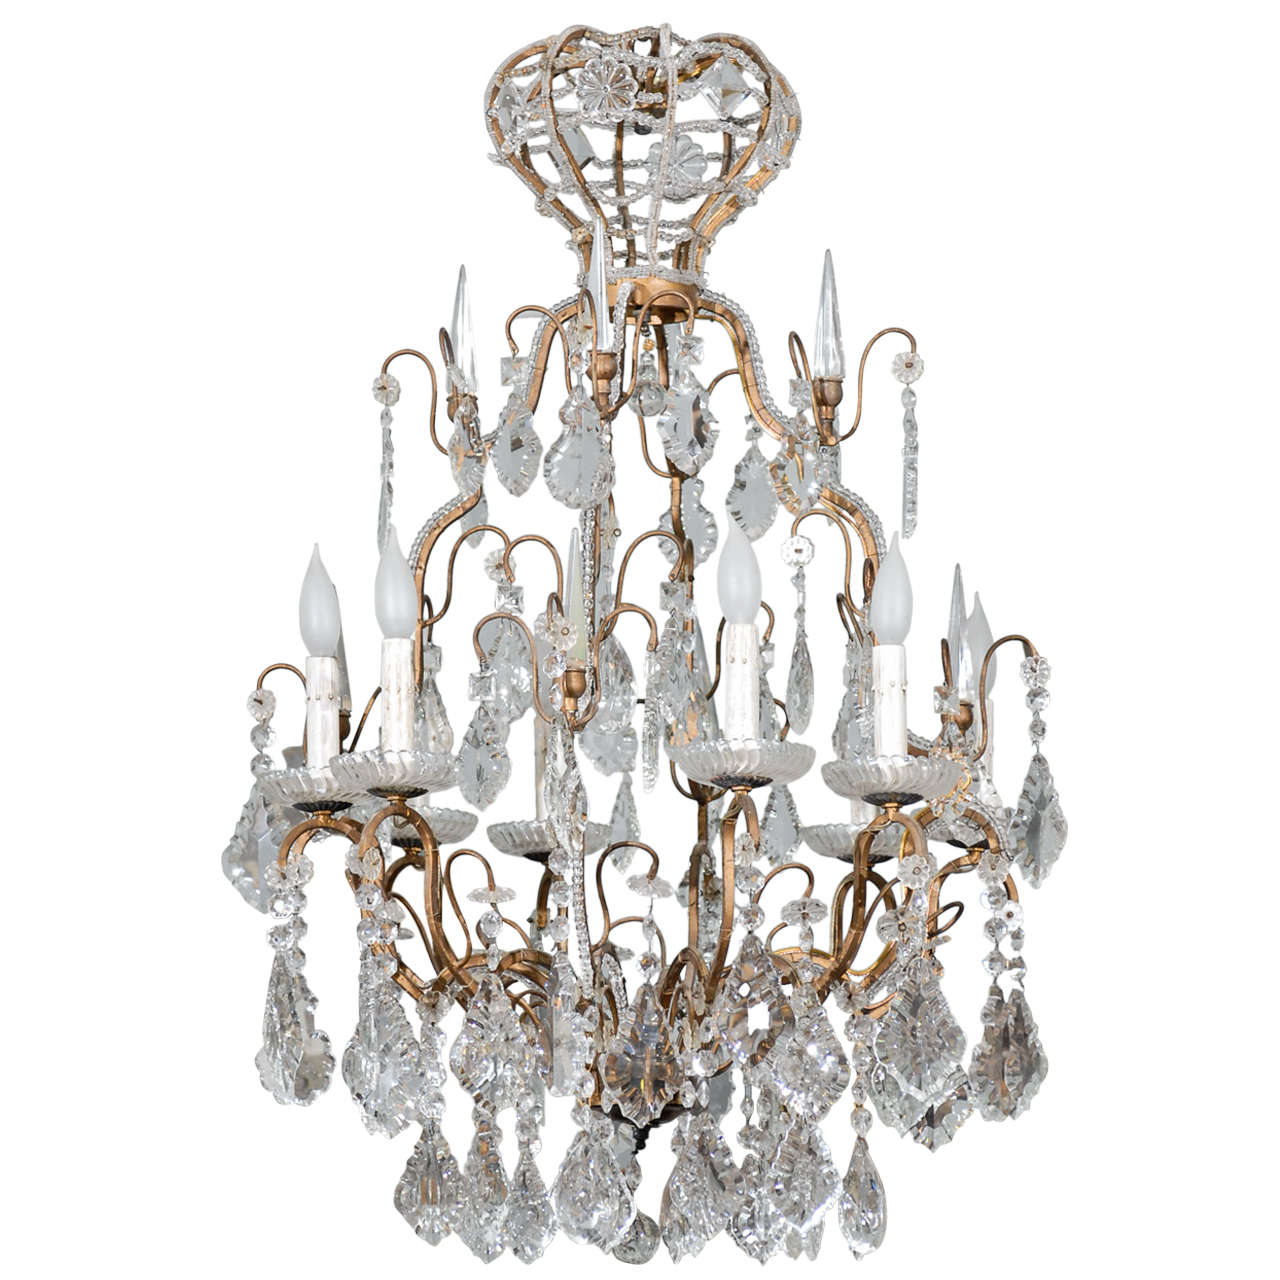 Italian vintage eight light crystal chandelier with crown like top italian vintage eight light crystal chandelier with crown like top for sale aloadofball Gallery